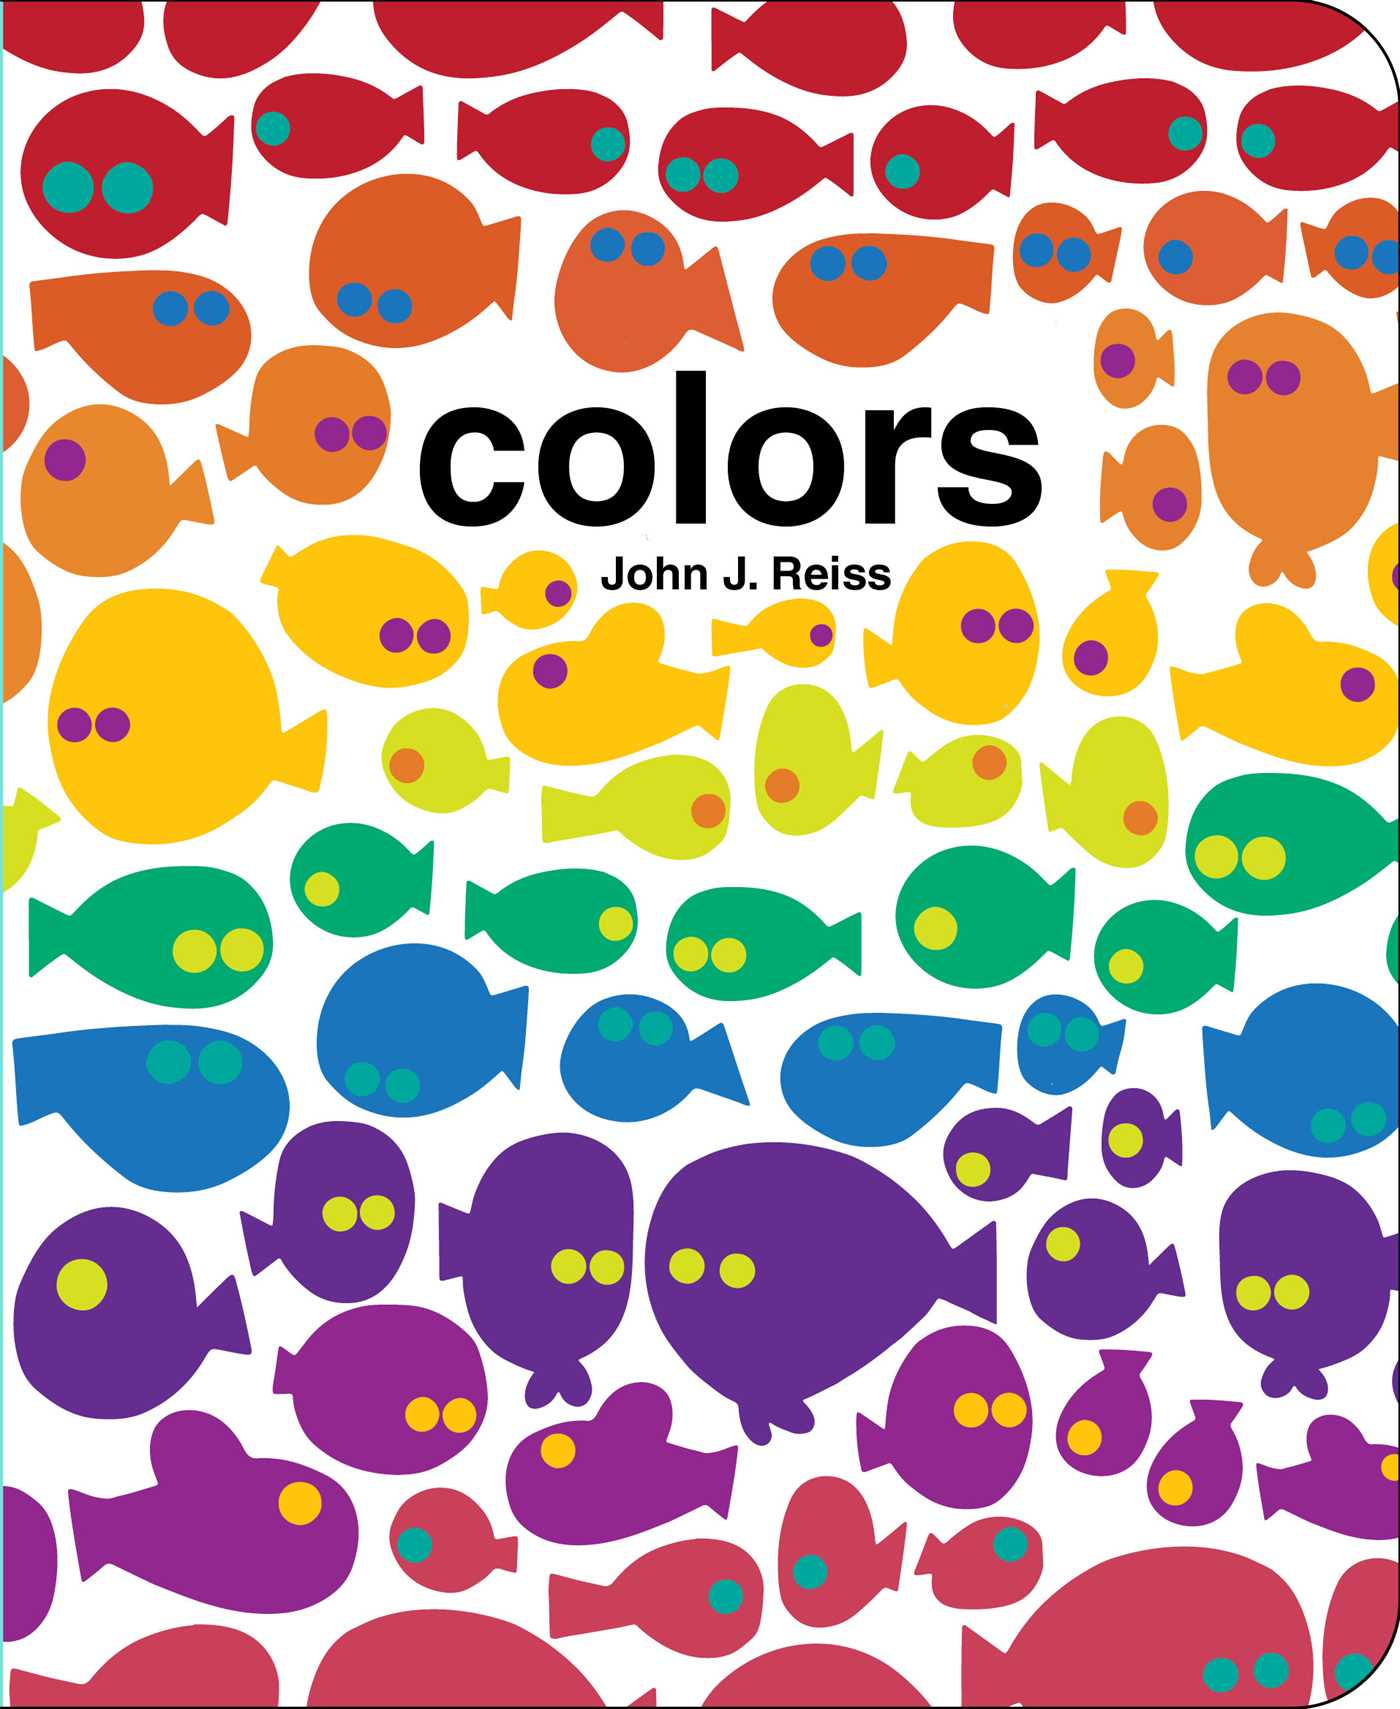 Colors Book by John J Reiss ficial Publisher Page